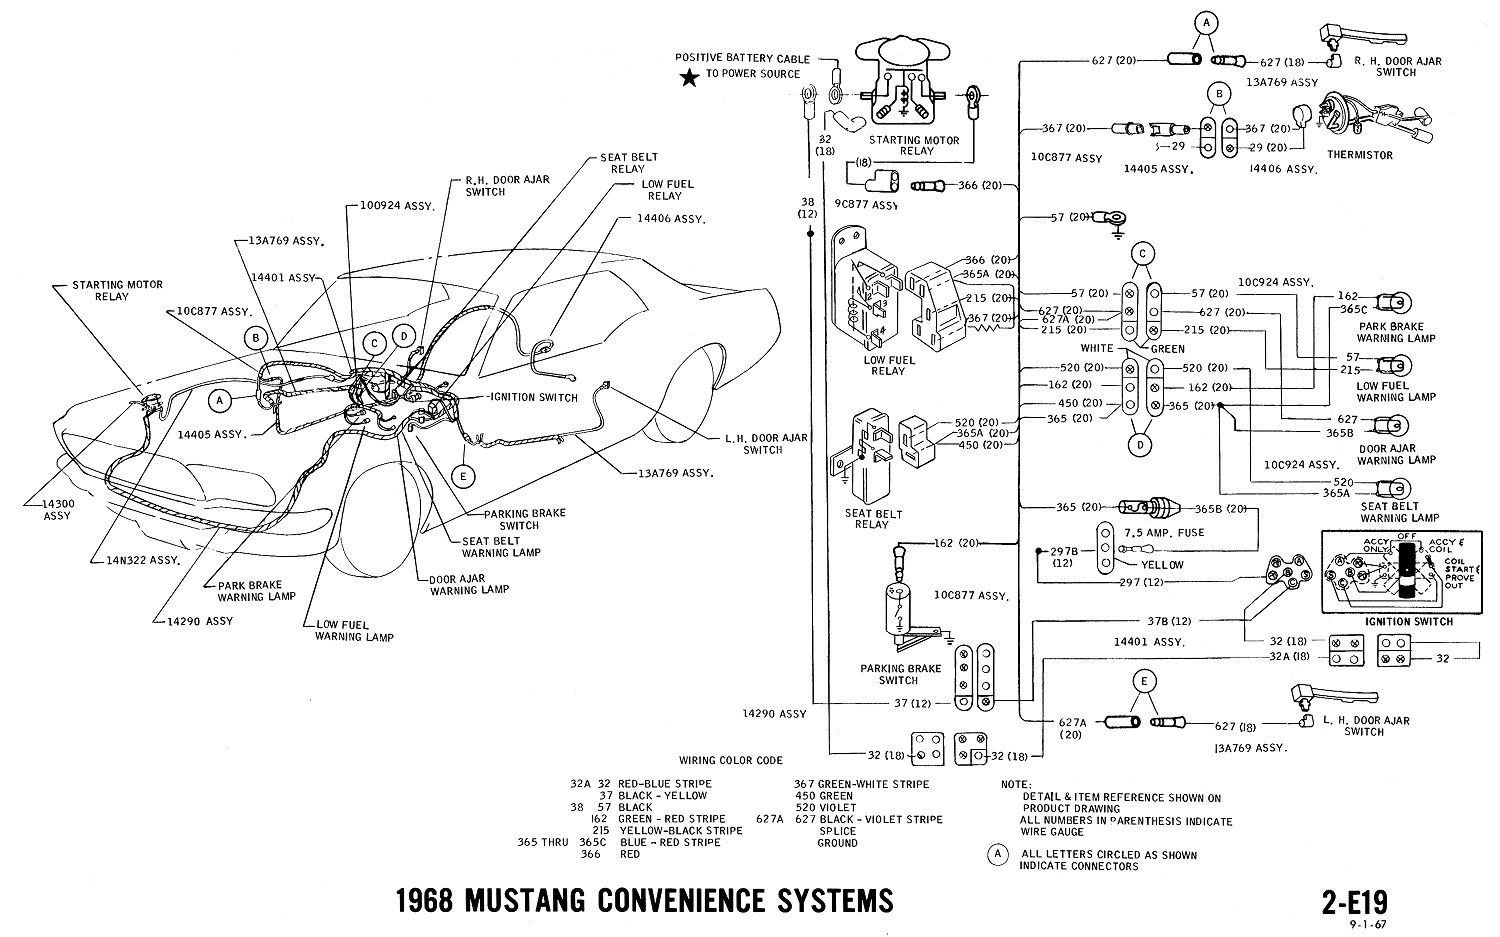 mustang wiring diagrams and vacuum schematics average joe 1968 mustang wiring diagram convenience systems